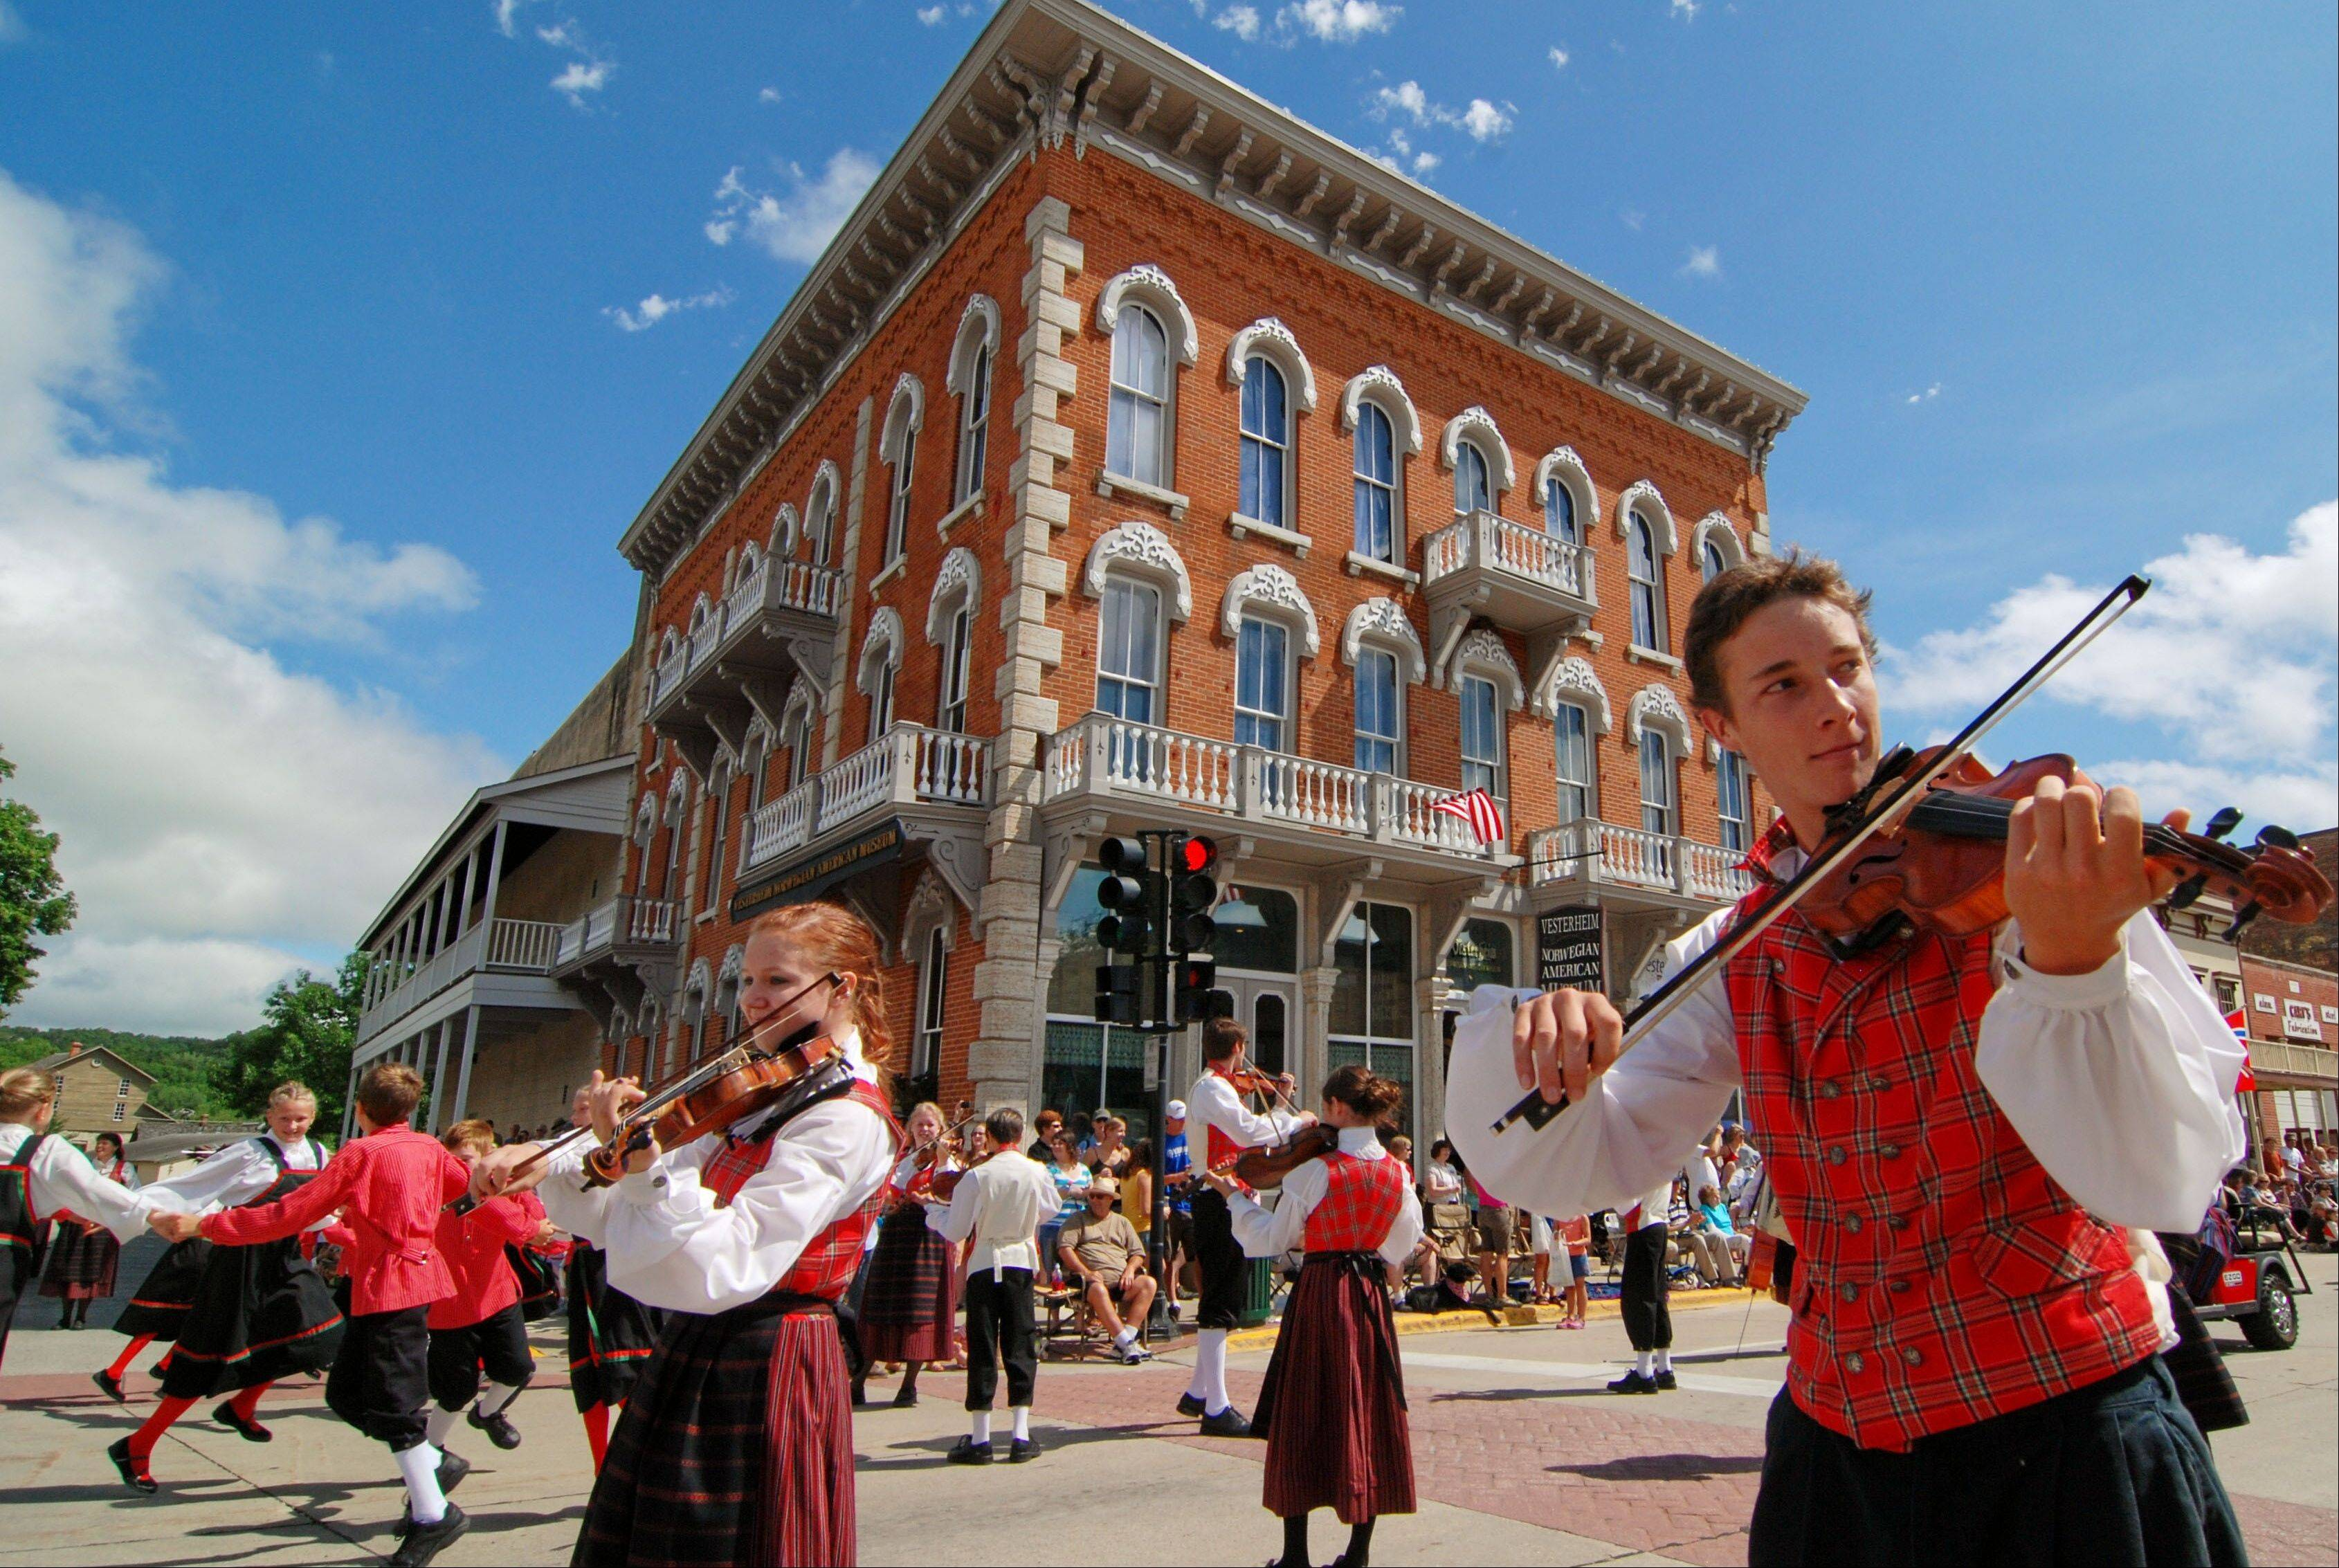 The 46th annual Nordic Fest takes place in Decorah, Iowa, Thursday through Saturday, July 26-28.